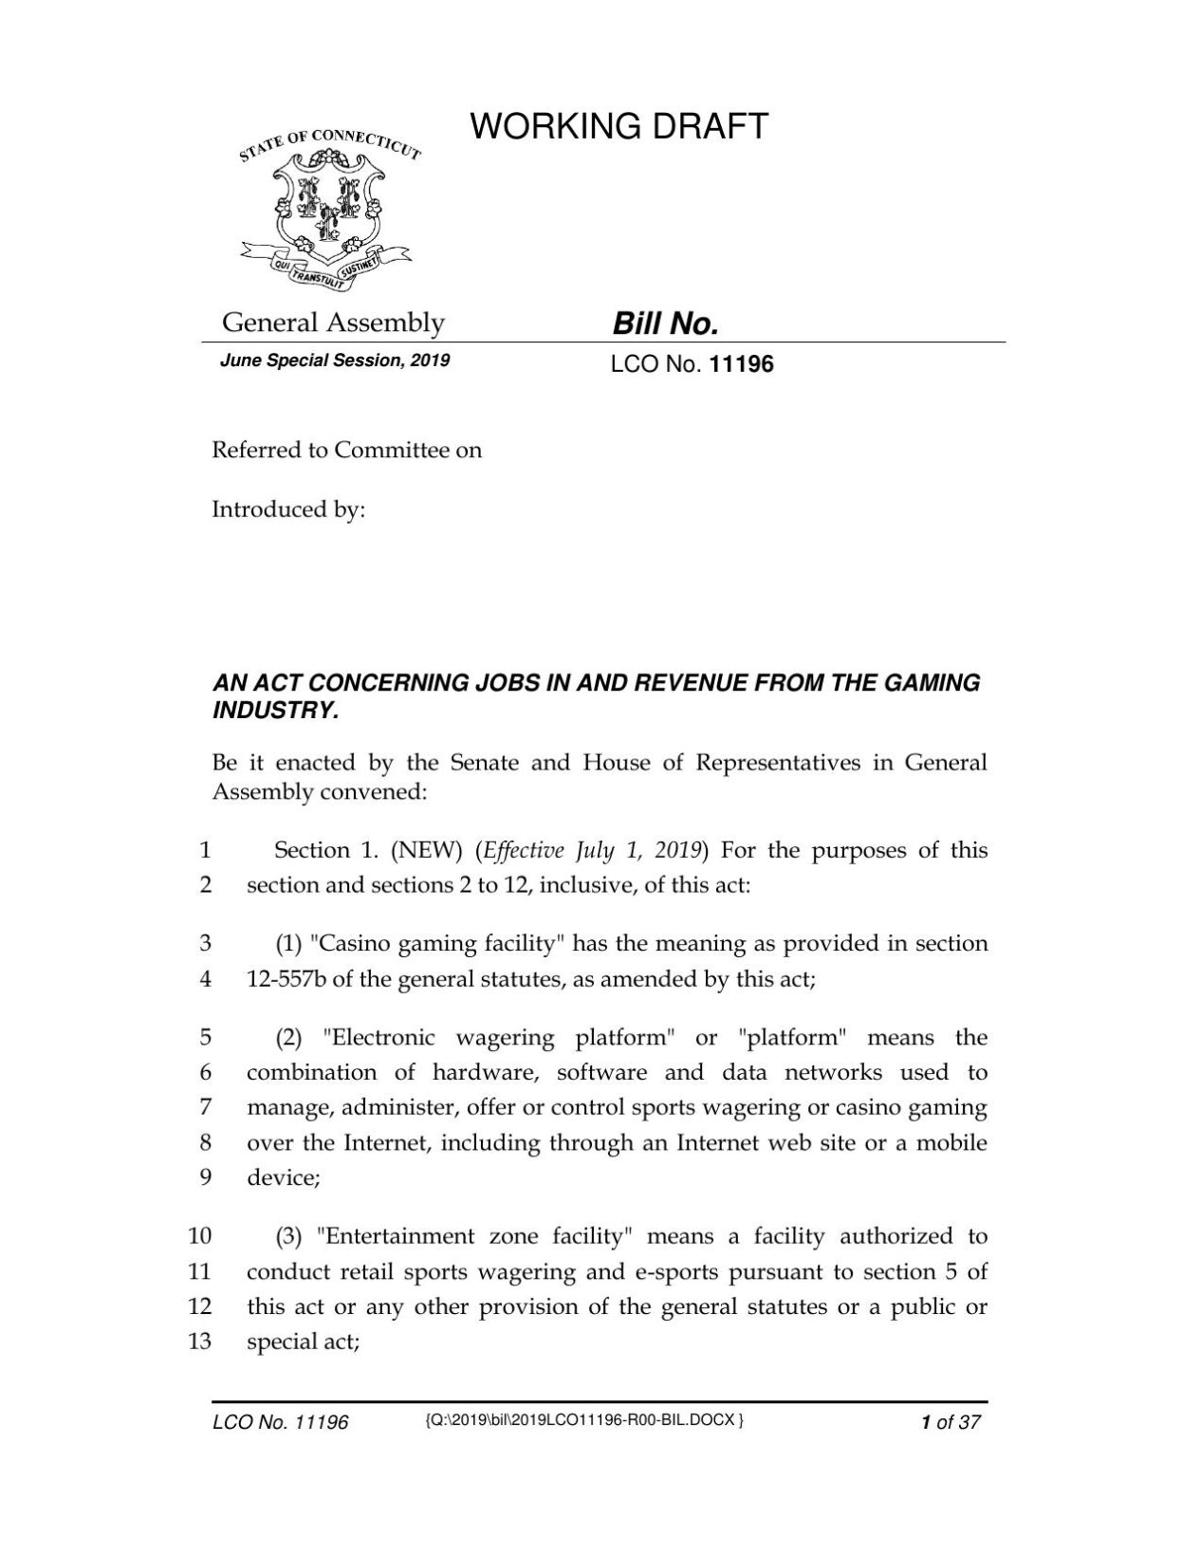 An Act Concerning Jobs In and Revenue from the Gaming Industry